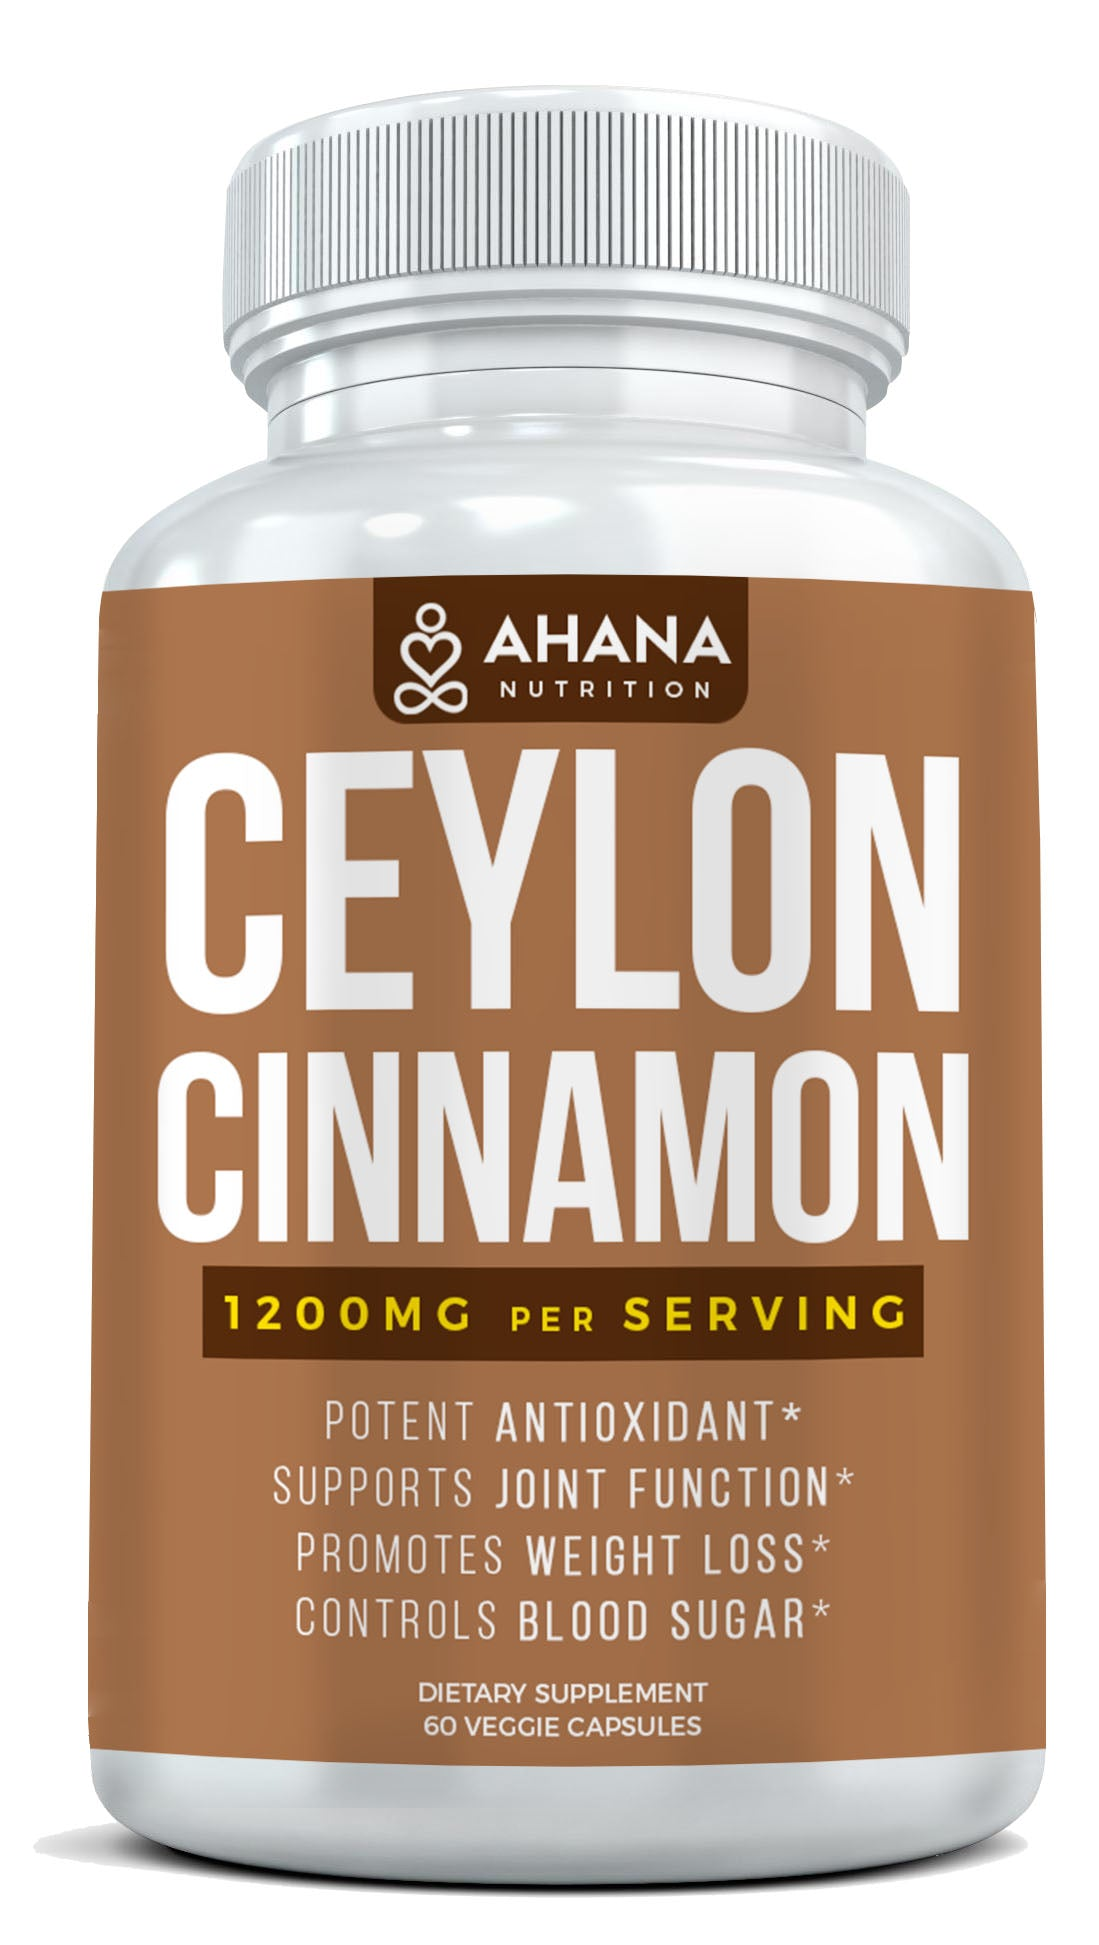 Ceylon Cinnamon Extract Supplement